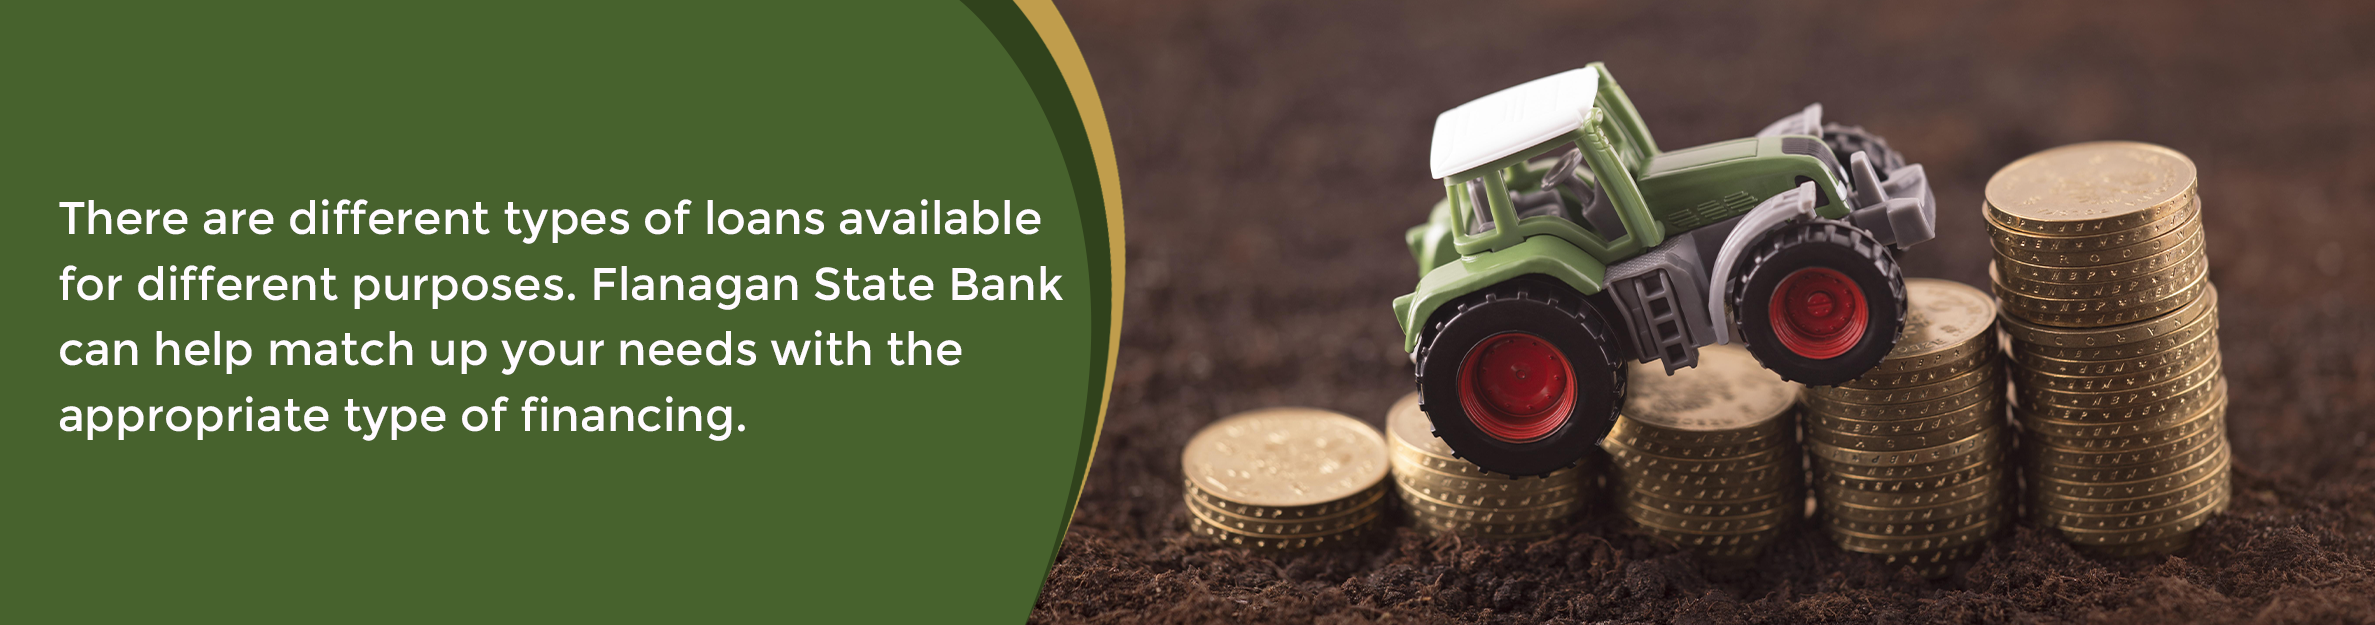 There are different types of loans available for different purposes. Flanagan State Bank can help match up your needs with the appropriate type of financing.